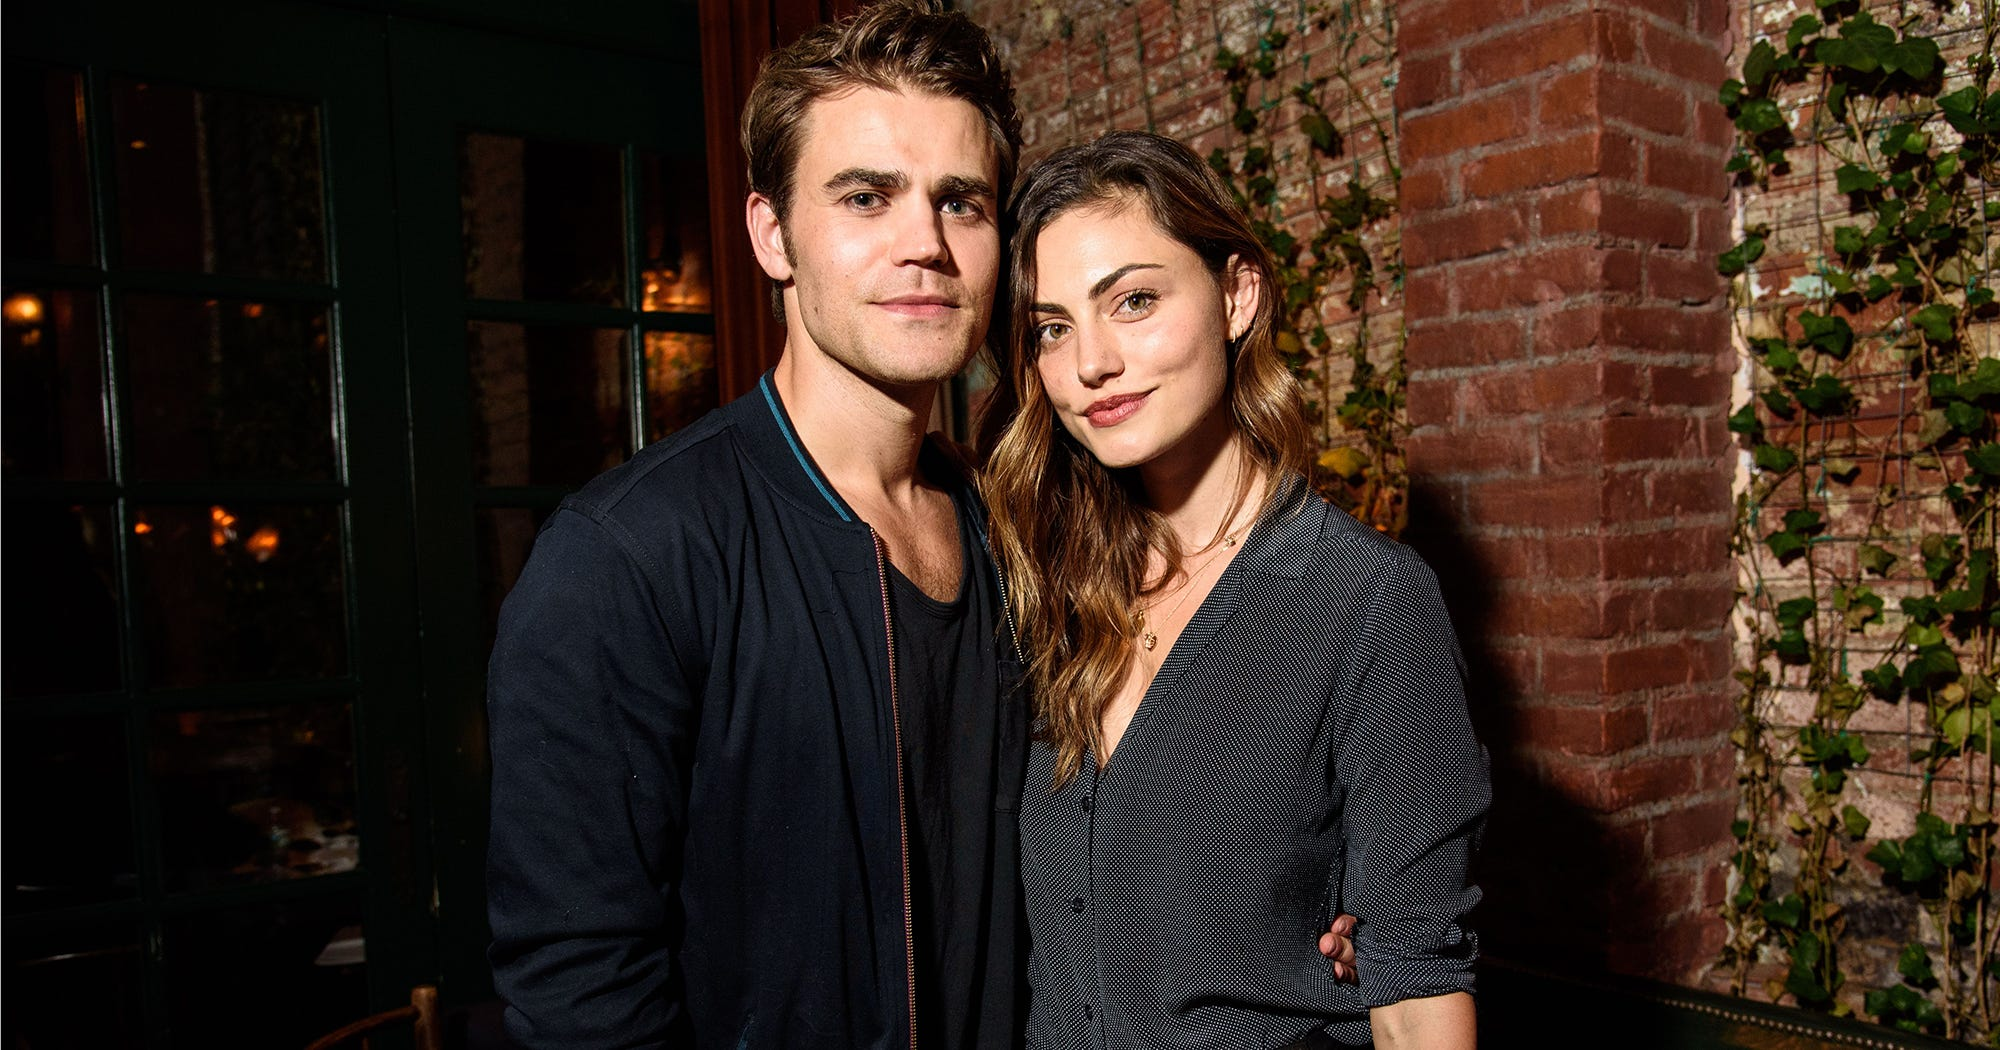 Are phoebe tonkin and paul wesley still dating after 5